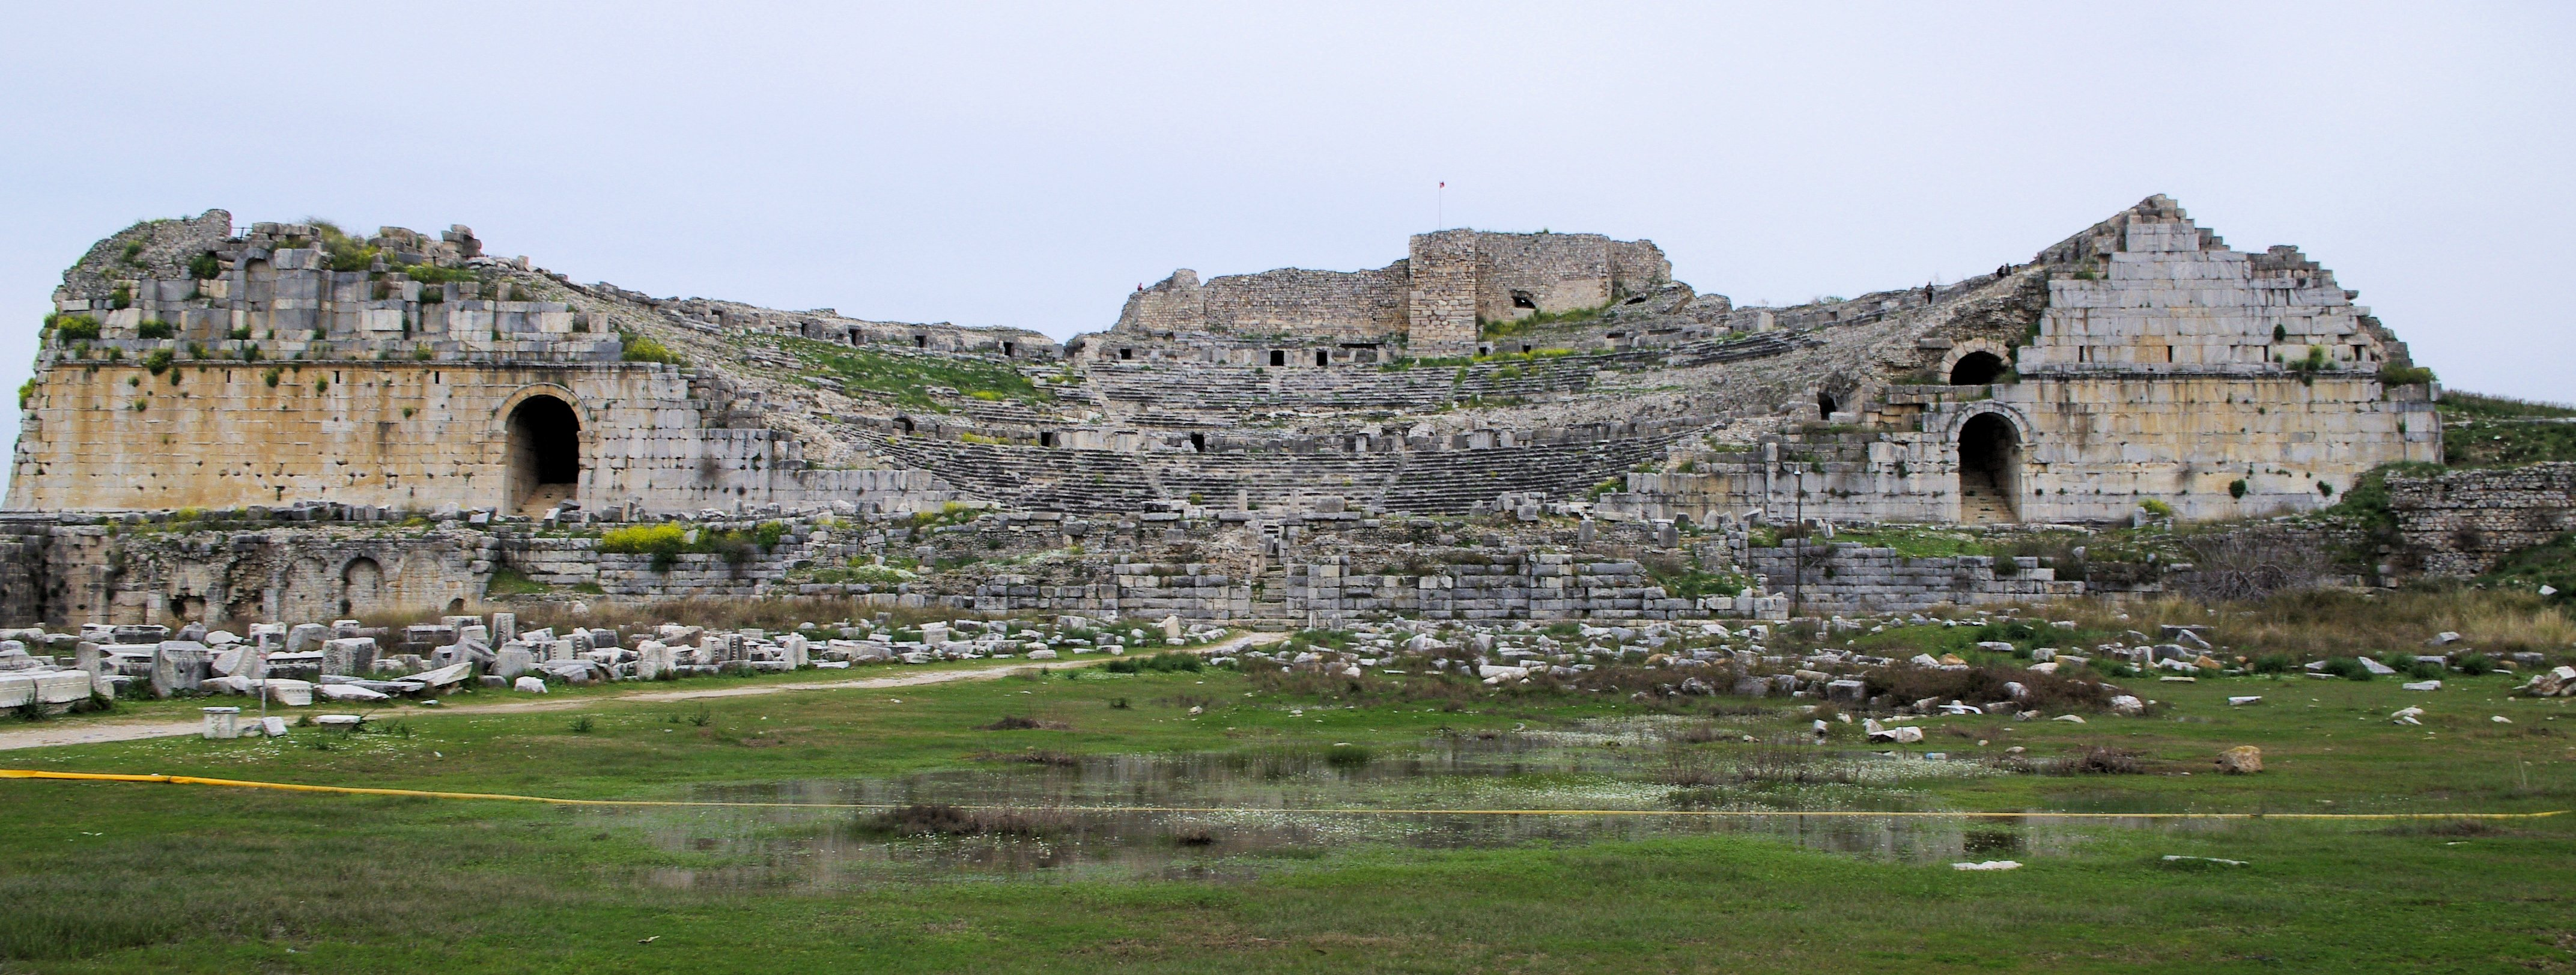 File:Grek Theater of Miletus and Byzantine fortress.jpg ...